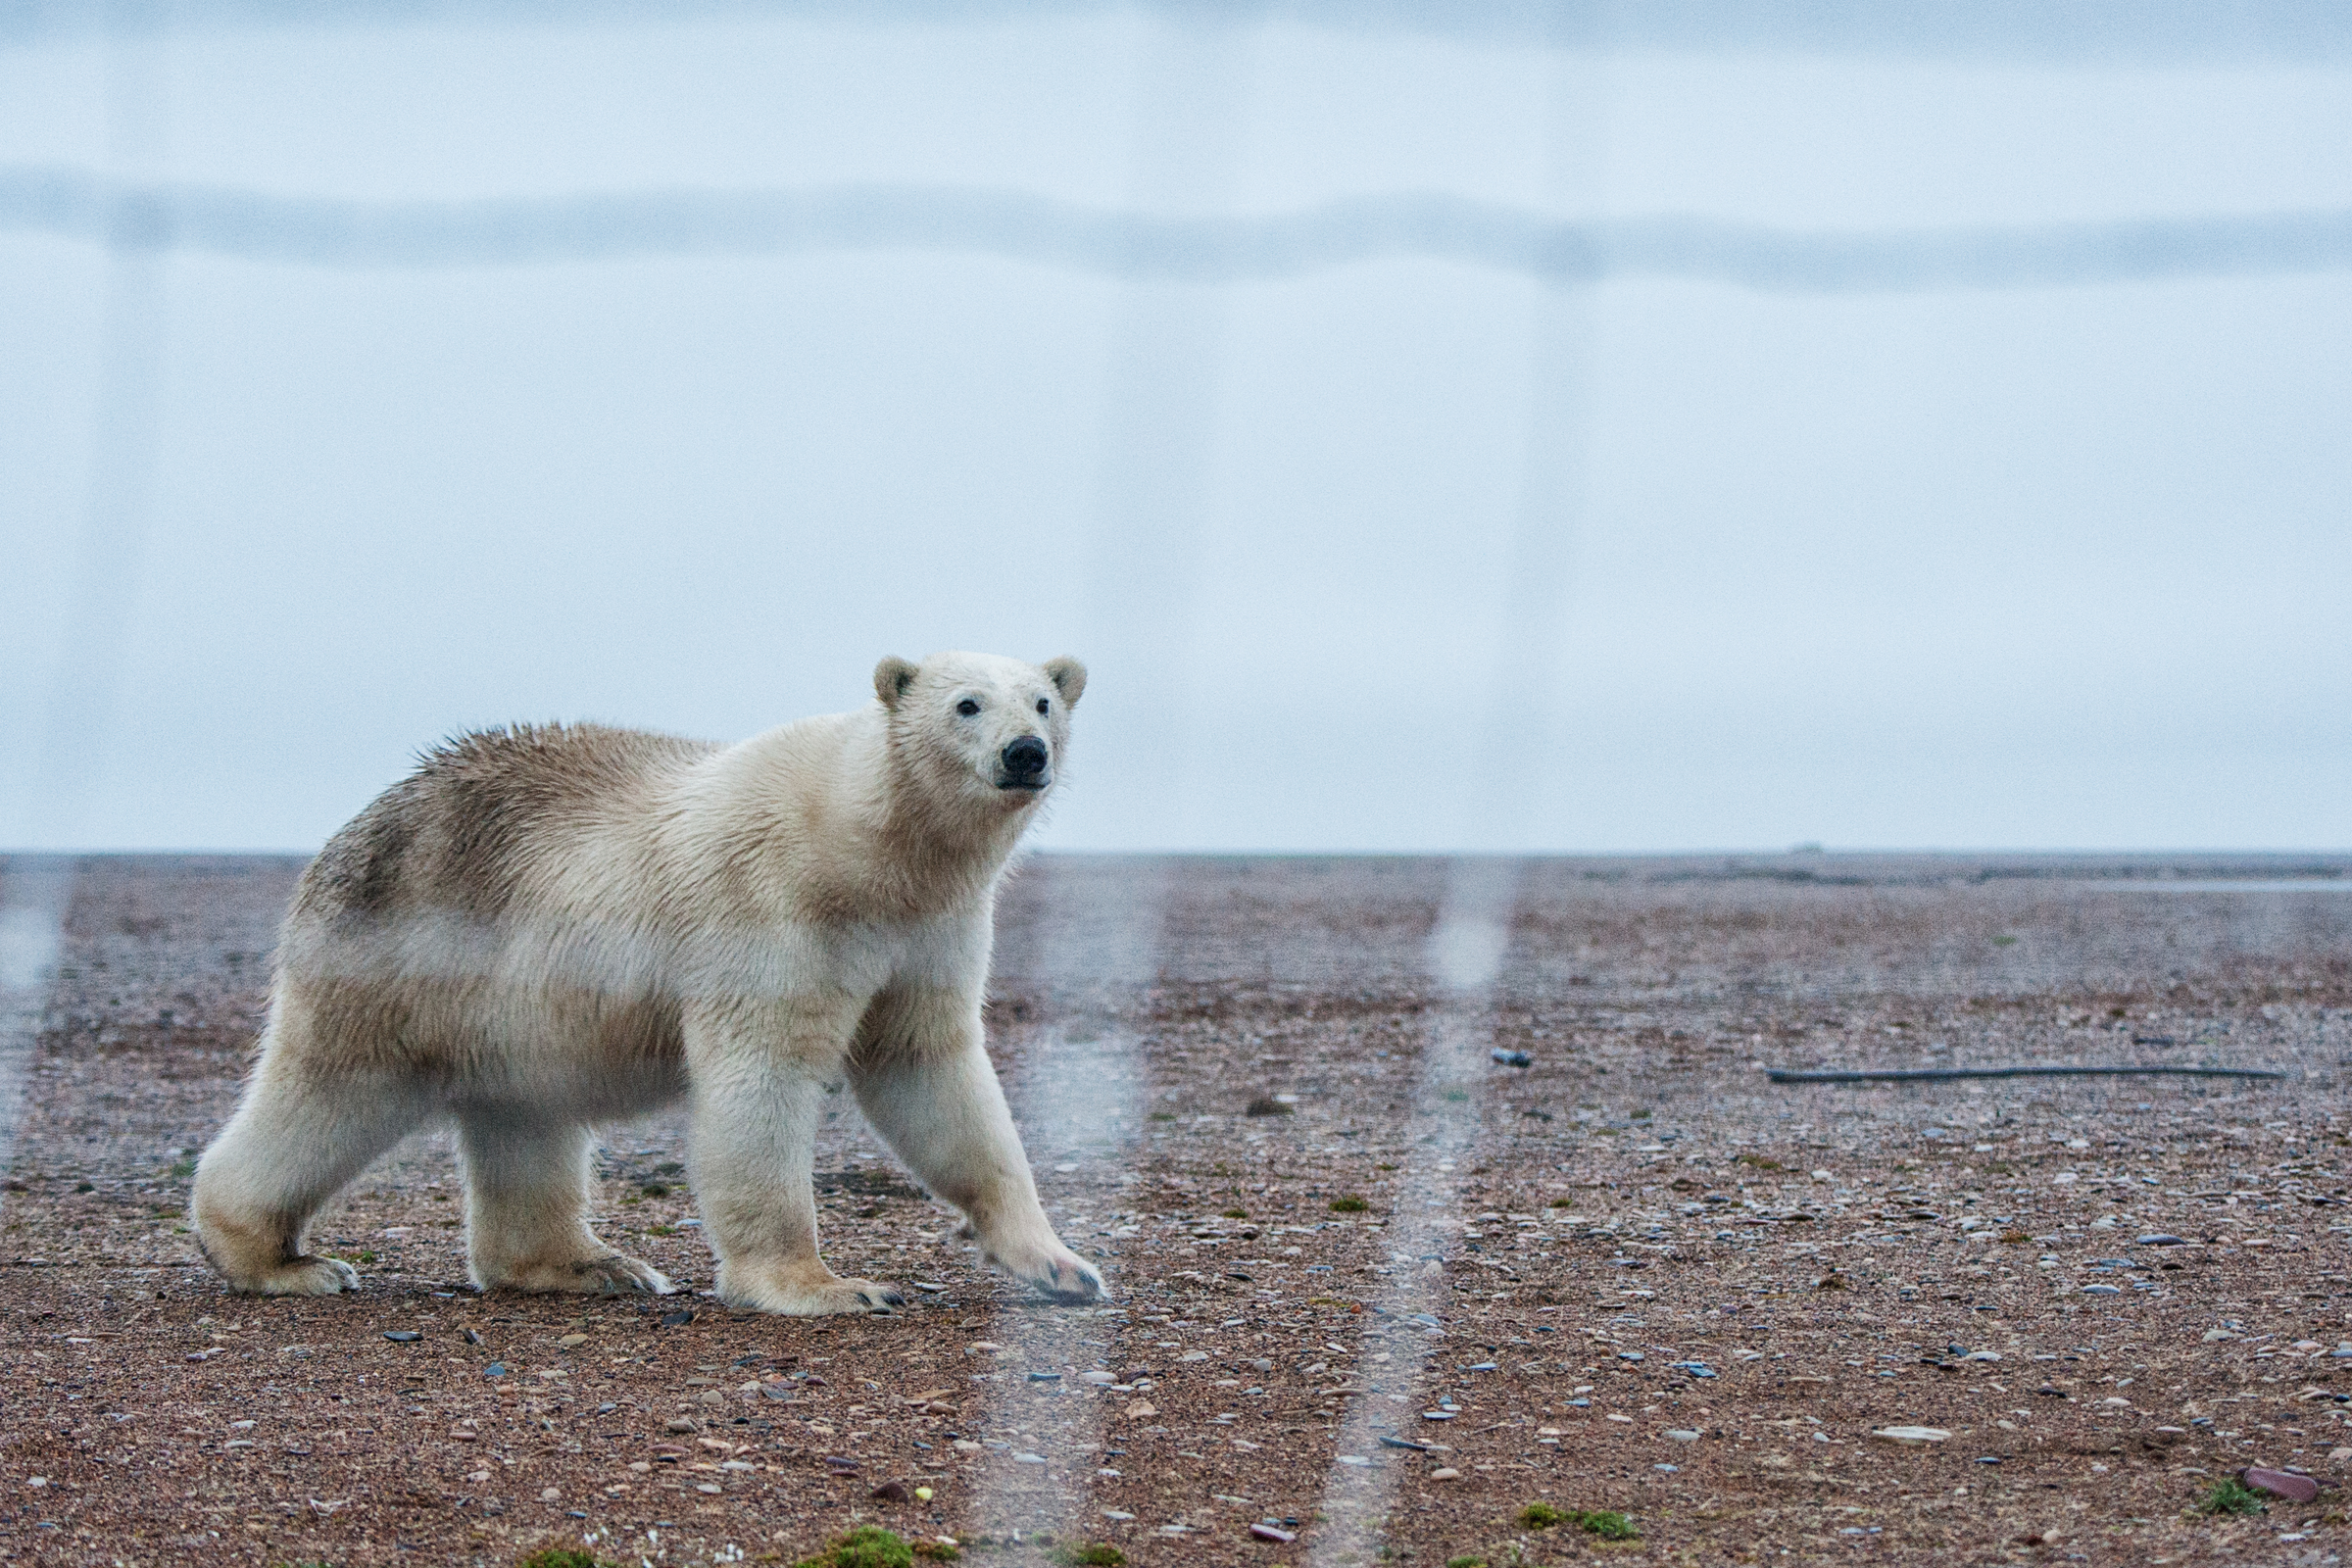 The white fur of a polar bear makes for less-than-ideal camouflage against the backdrop of Cooper Island's brown gravel and sand. Peter Mather